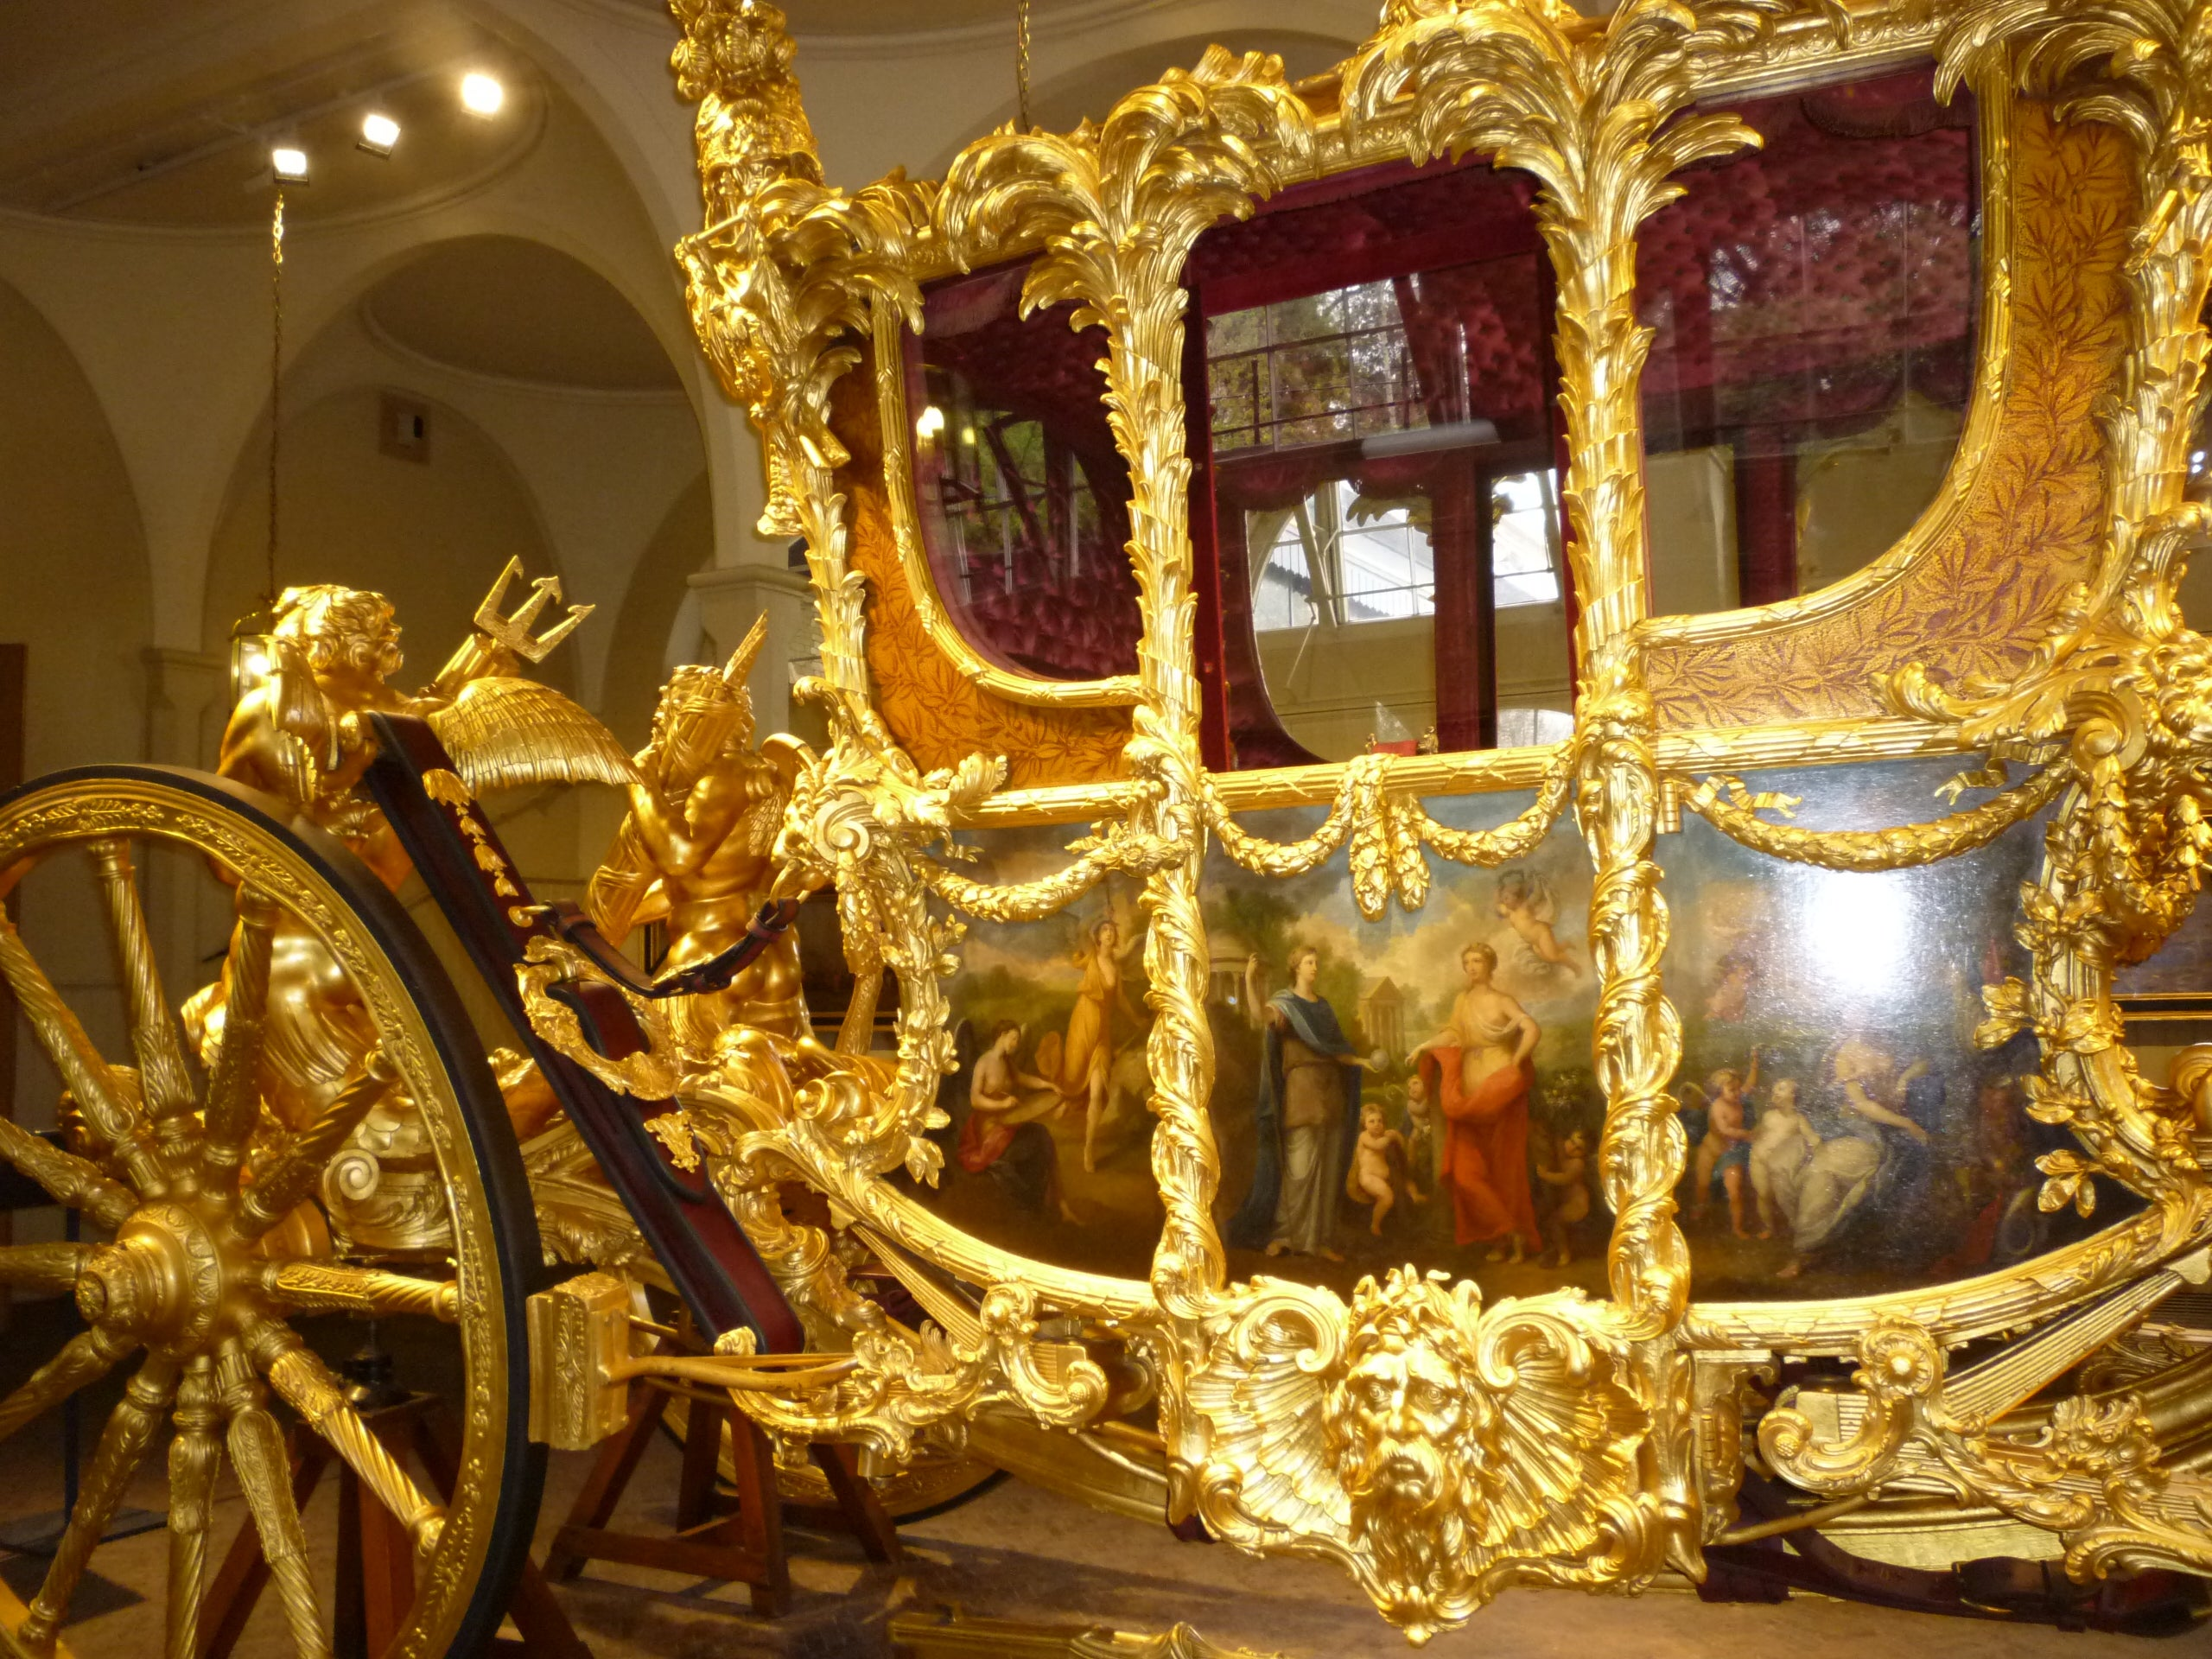 Latón en Royal Mews